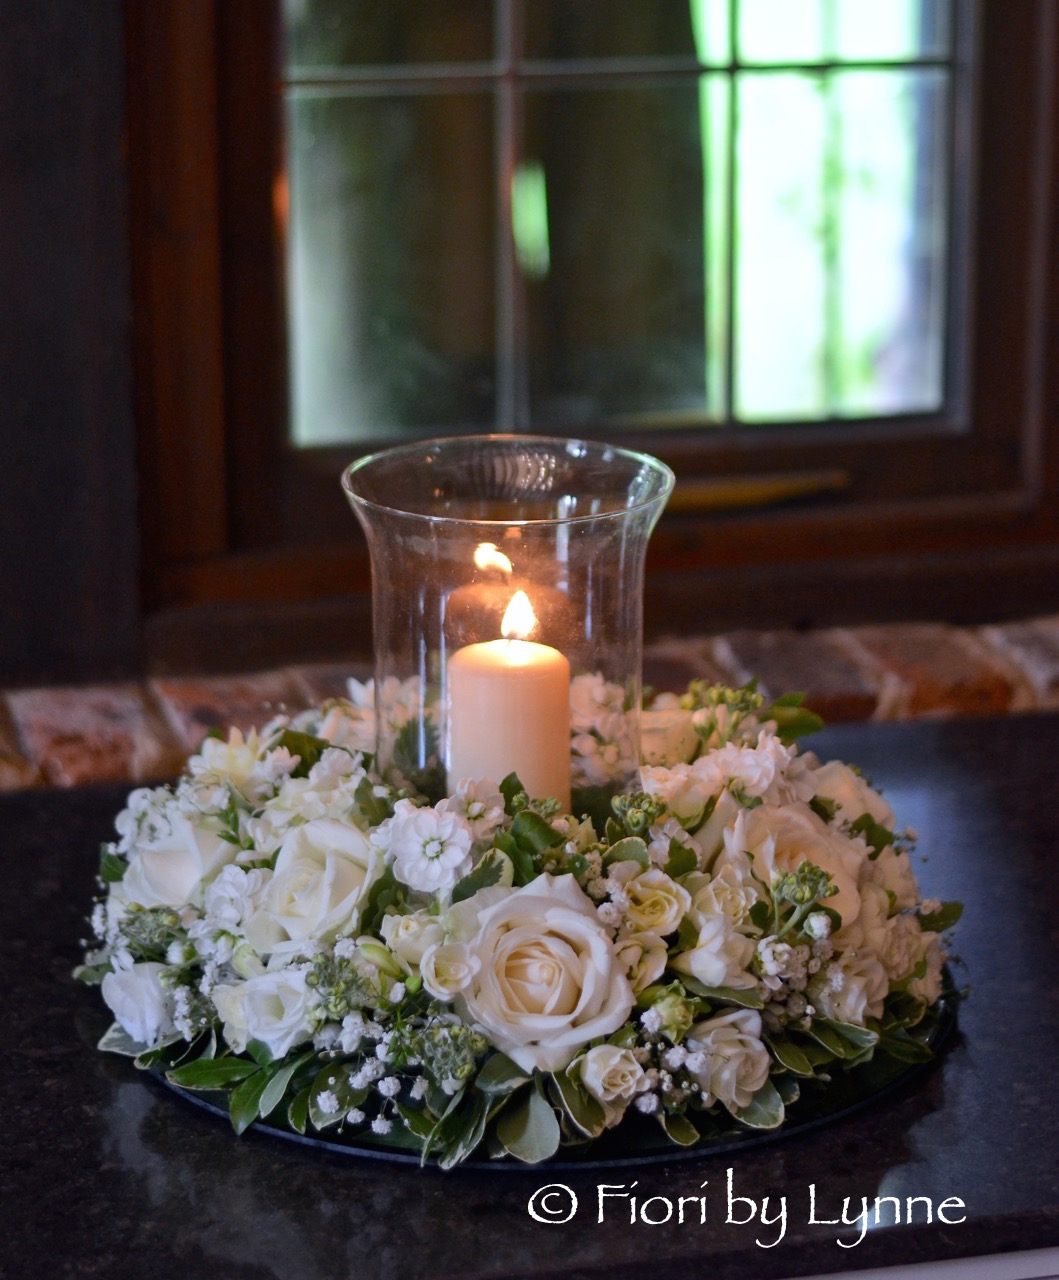 floral-wreath-tablecentre-storm-lantern-church-candle-summer-whites.jpg